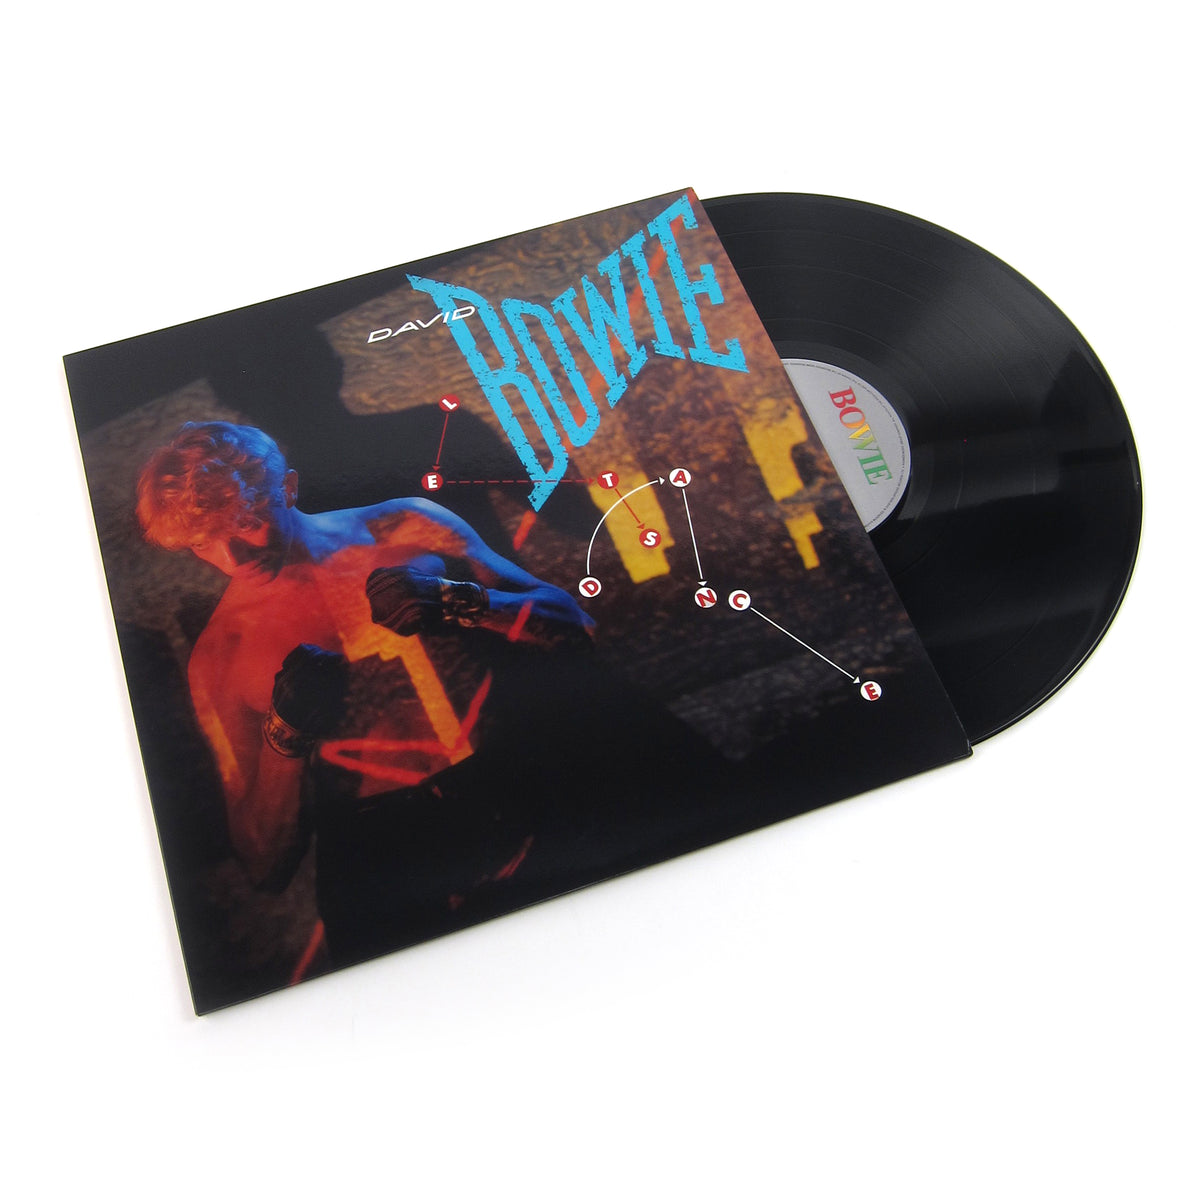 David Bowie: Let's Dance (180g) Vinyl LP